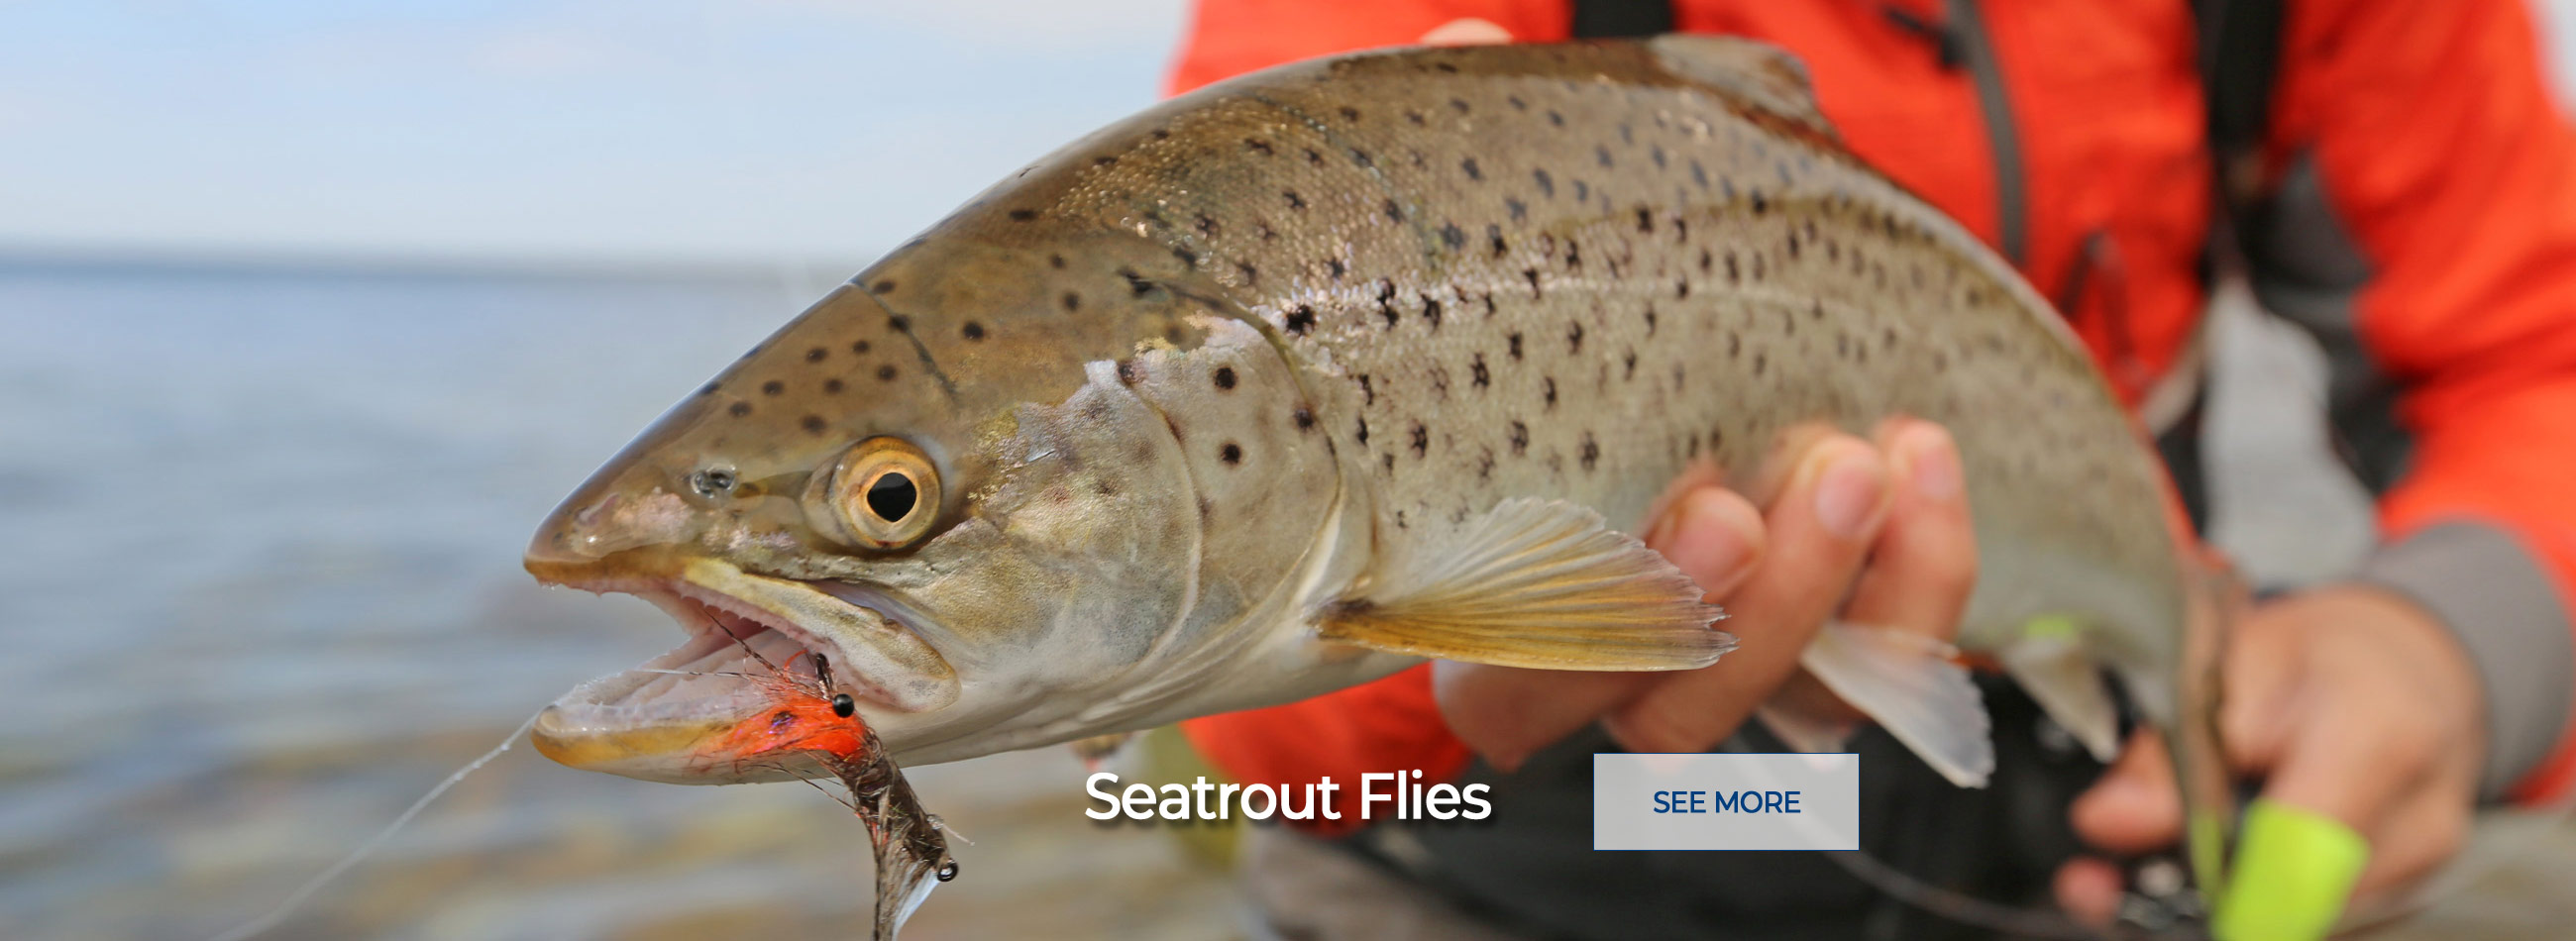 Fishing for Seatrout - buy online! The best Flies for Seatrout!